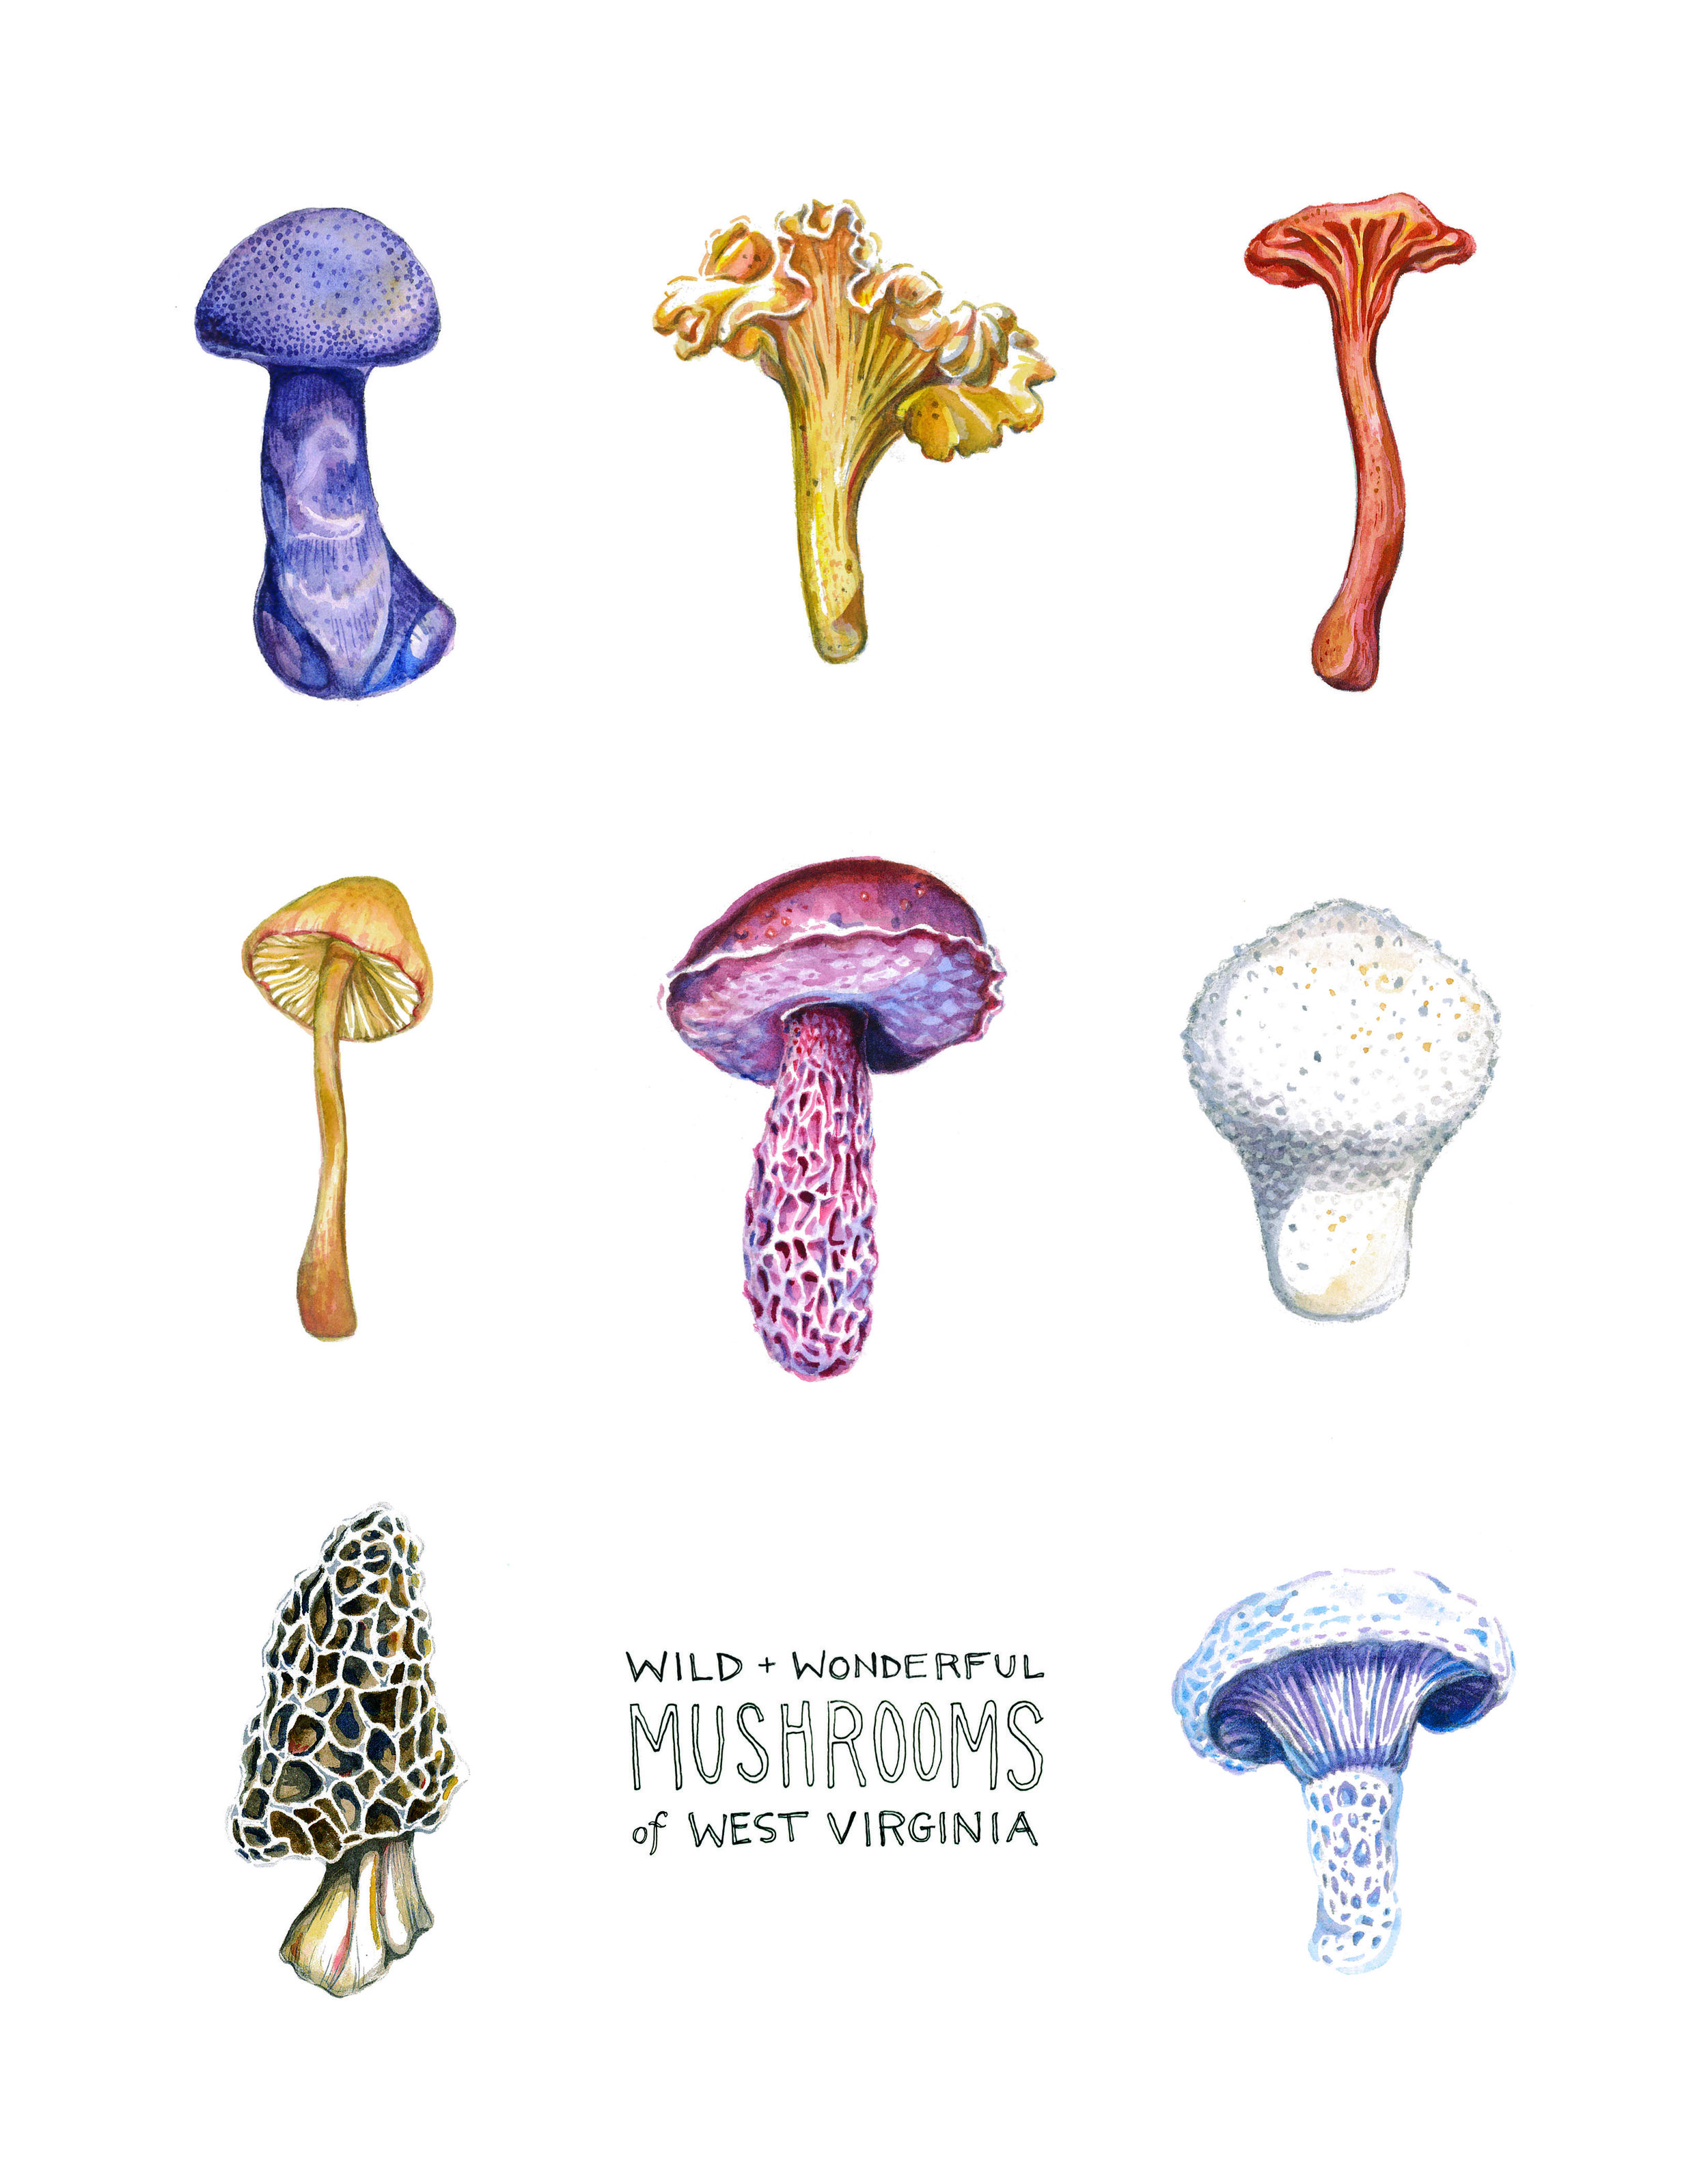 Mushrooms_of_WV.jpg